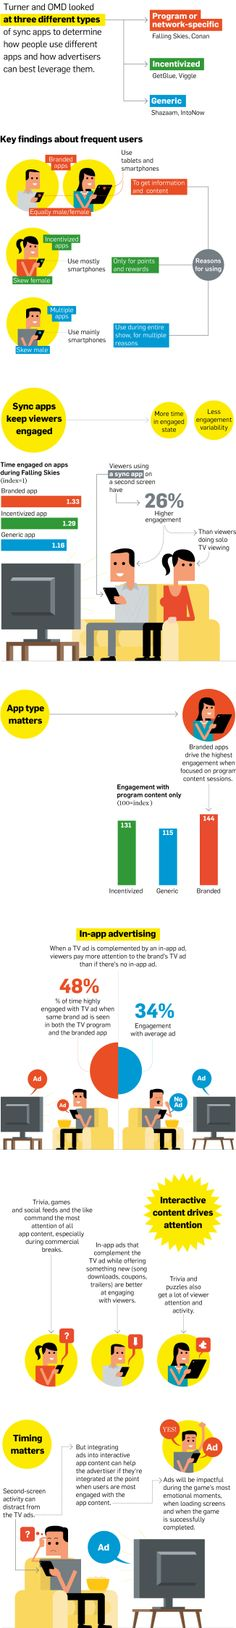 The Type of Second-Screen Apps That Keep Users Engaged the Most How advertisers can best leverage them #adweek #infographic #apps